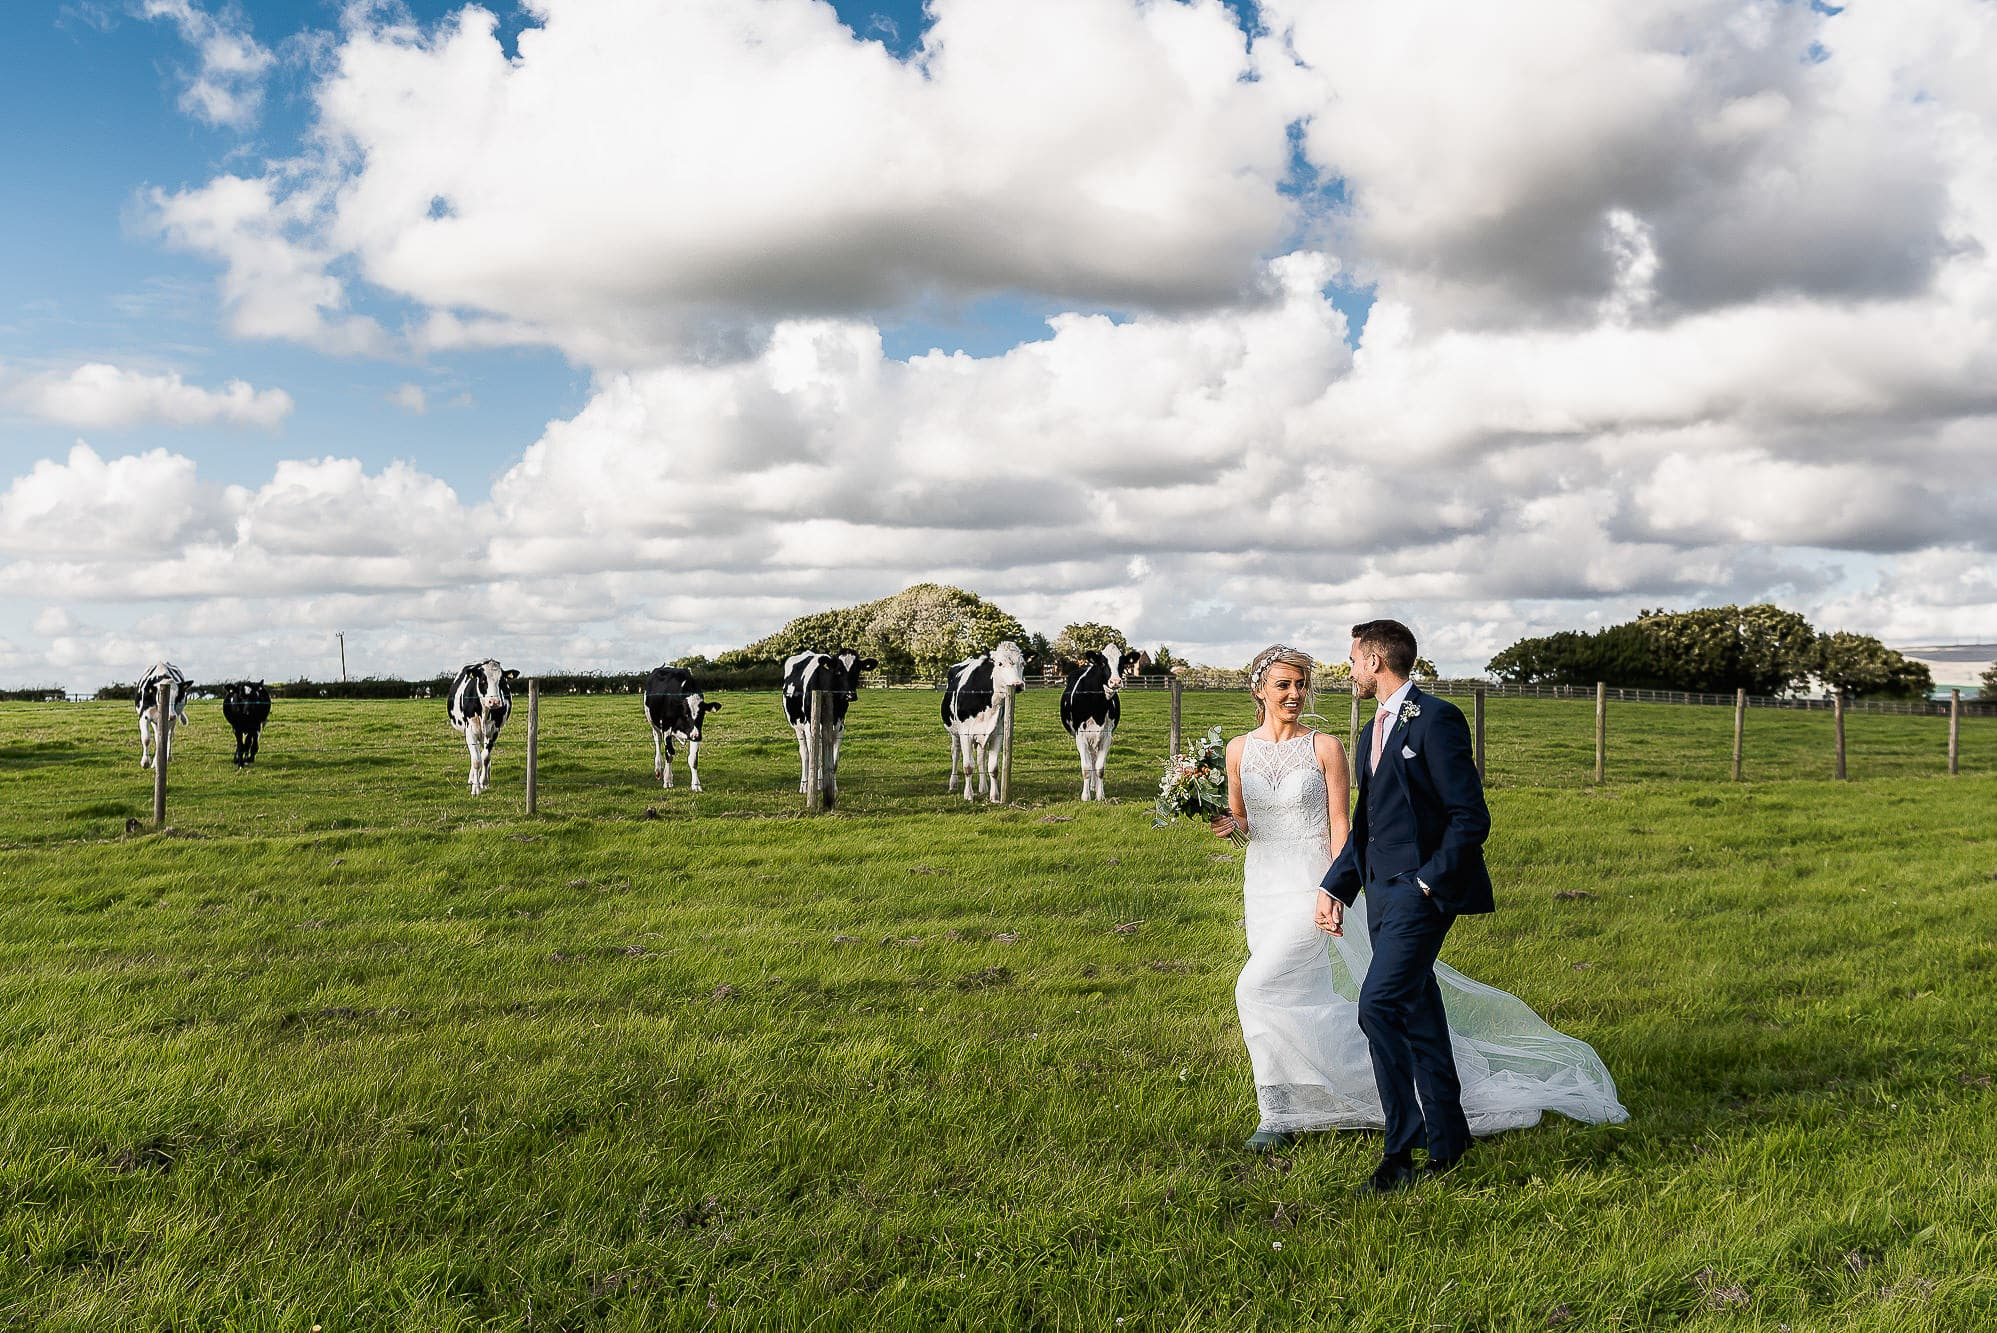 Bride and groom walking through field with cows looking on